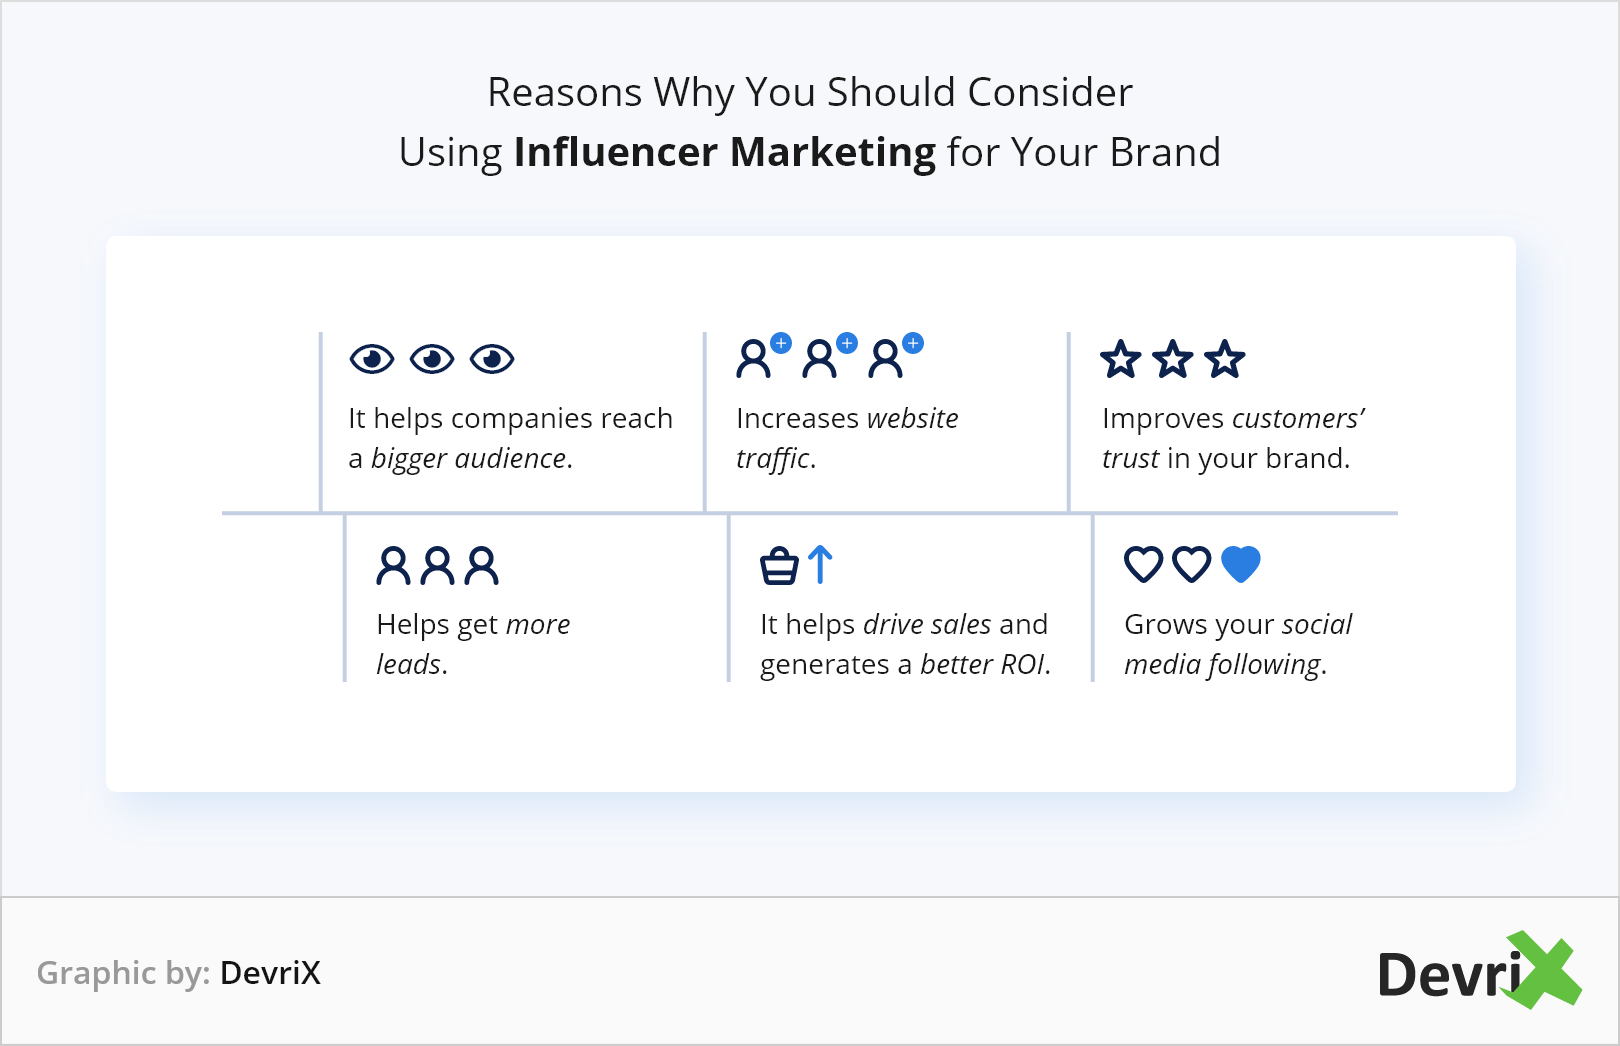 Reasons Why You Should ConsiderUsing Influencer Marketing for Your Brand